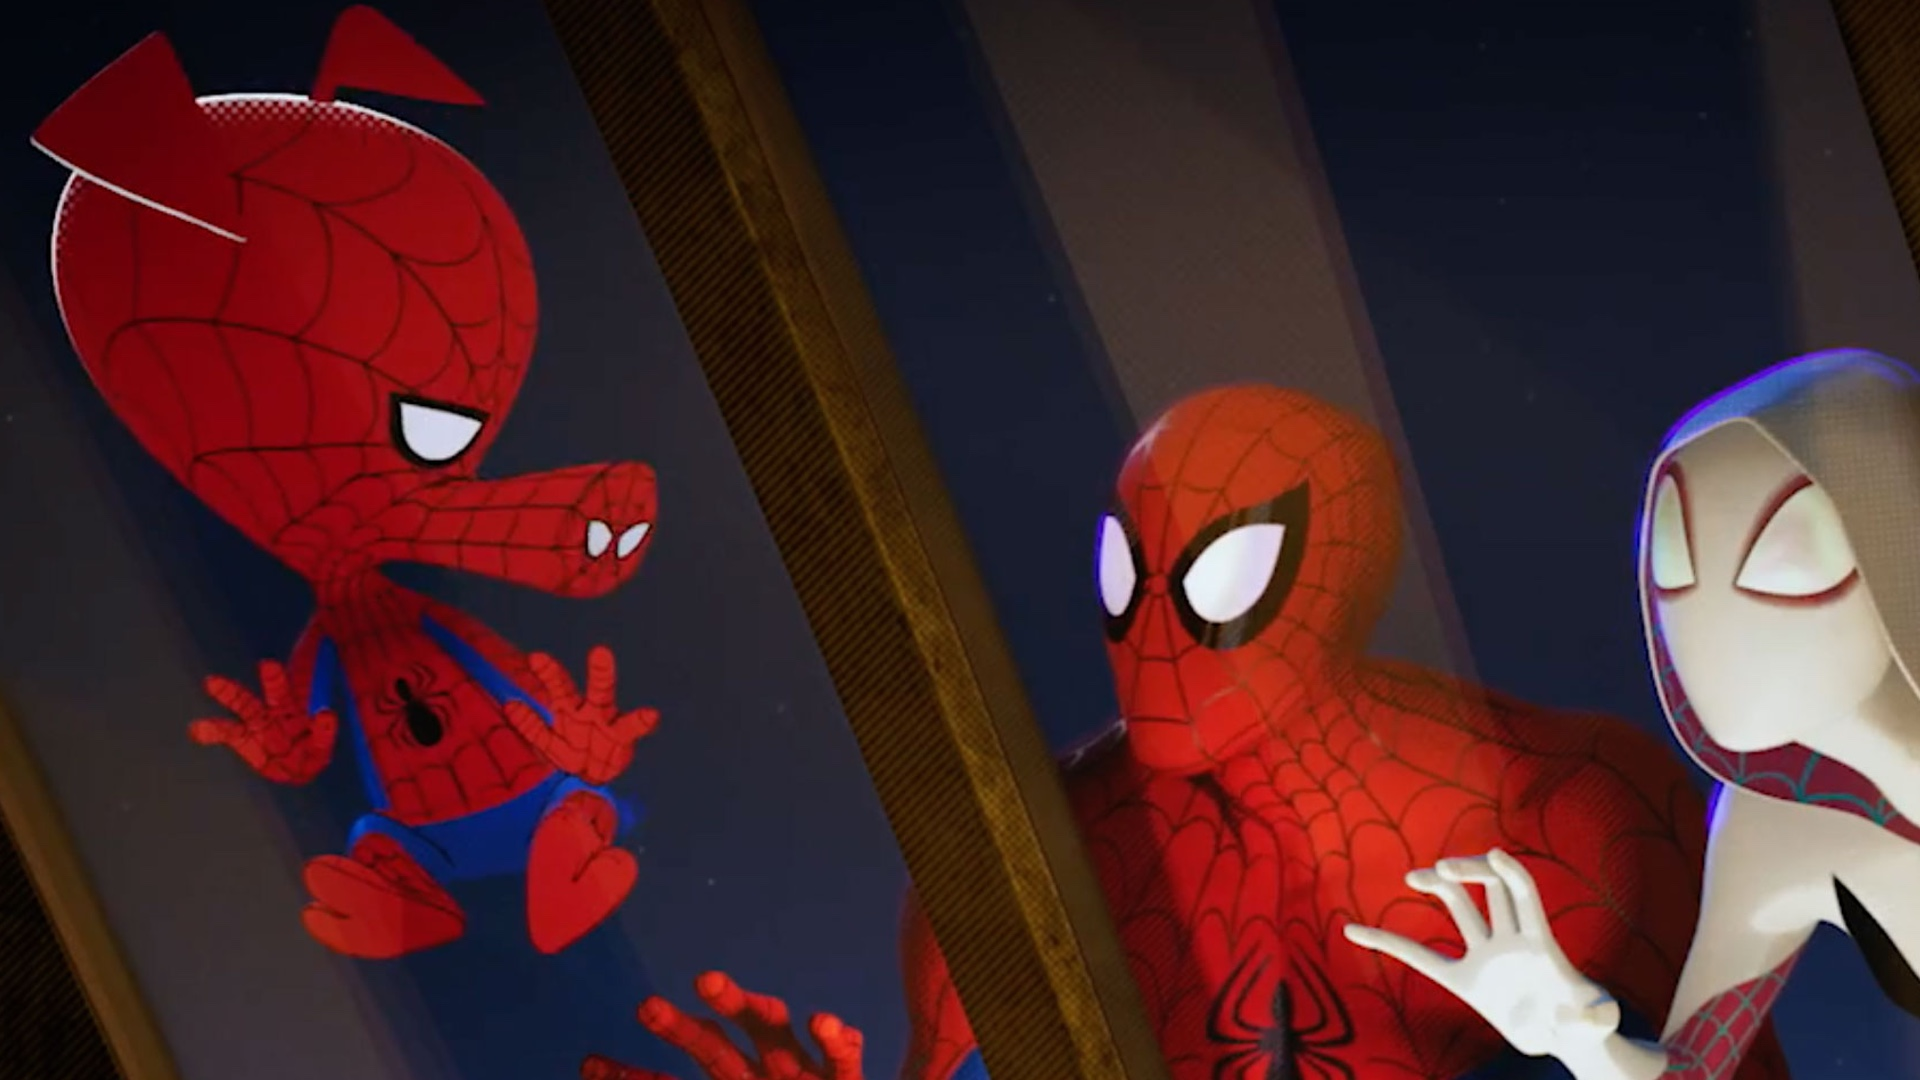 the-spider-man-into-the-spider-verse-producers-are-excited-about-making-a-spider-ham-spinoff-social.jpg